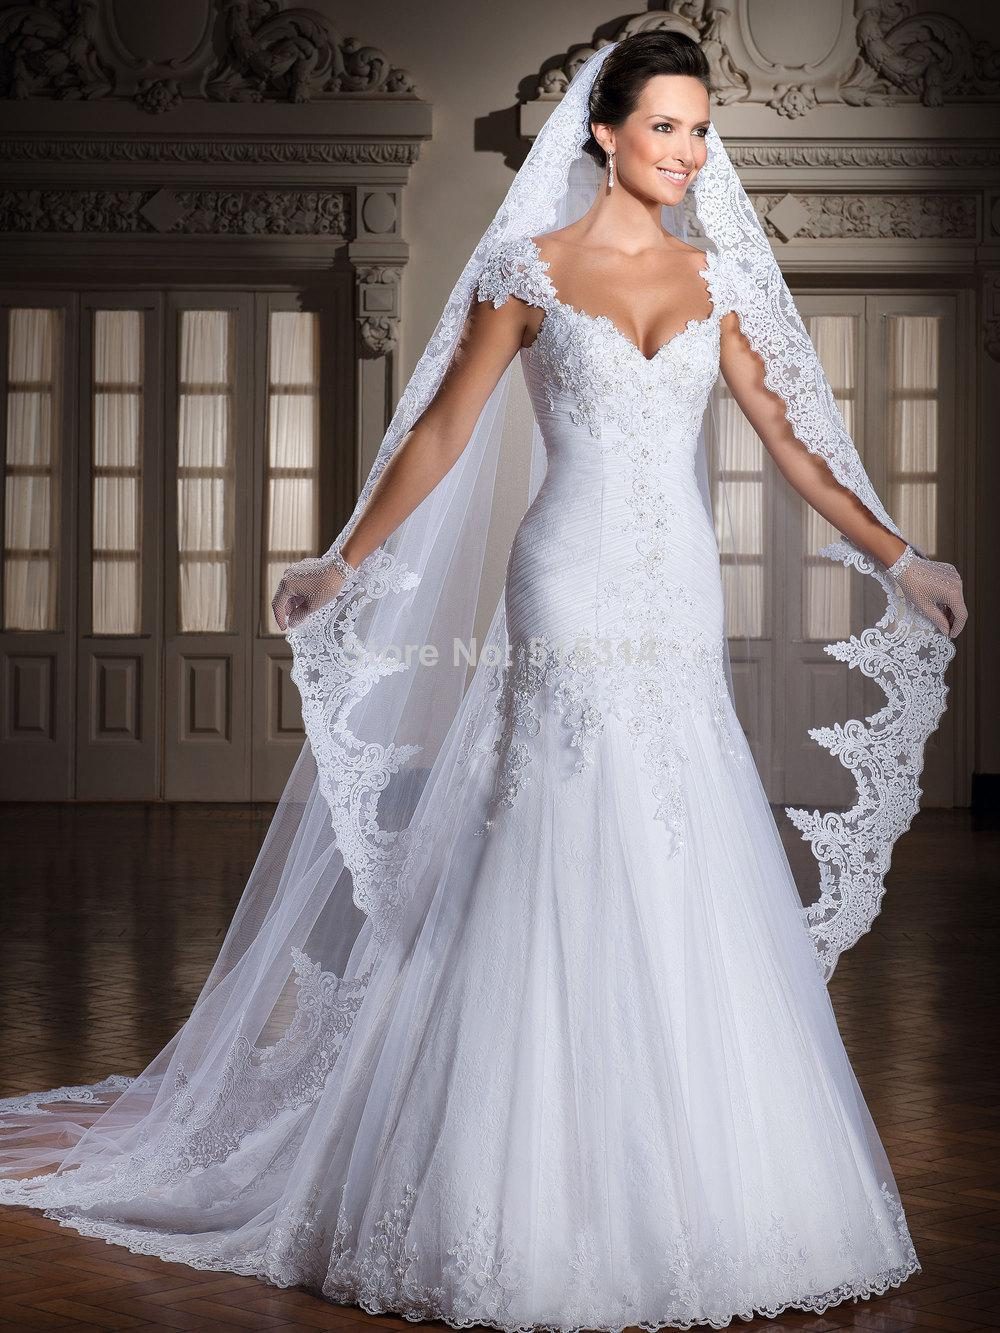 New design 2015 traditional wedding dress sexy a line luxury tulle new design 2015 traditional wedding dress sexy a line luxury tulle with appliques special occasion bride dress formal dress in wedding dresses from weddings junglespirit Choice Image